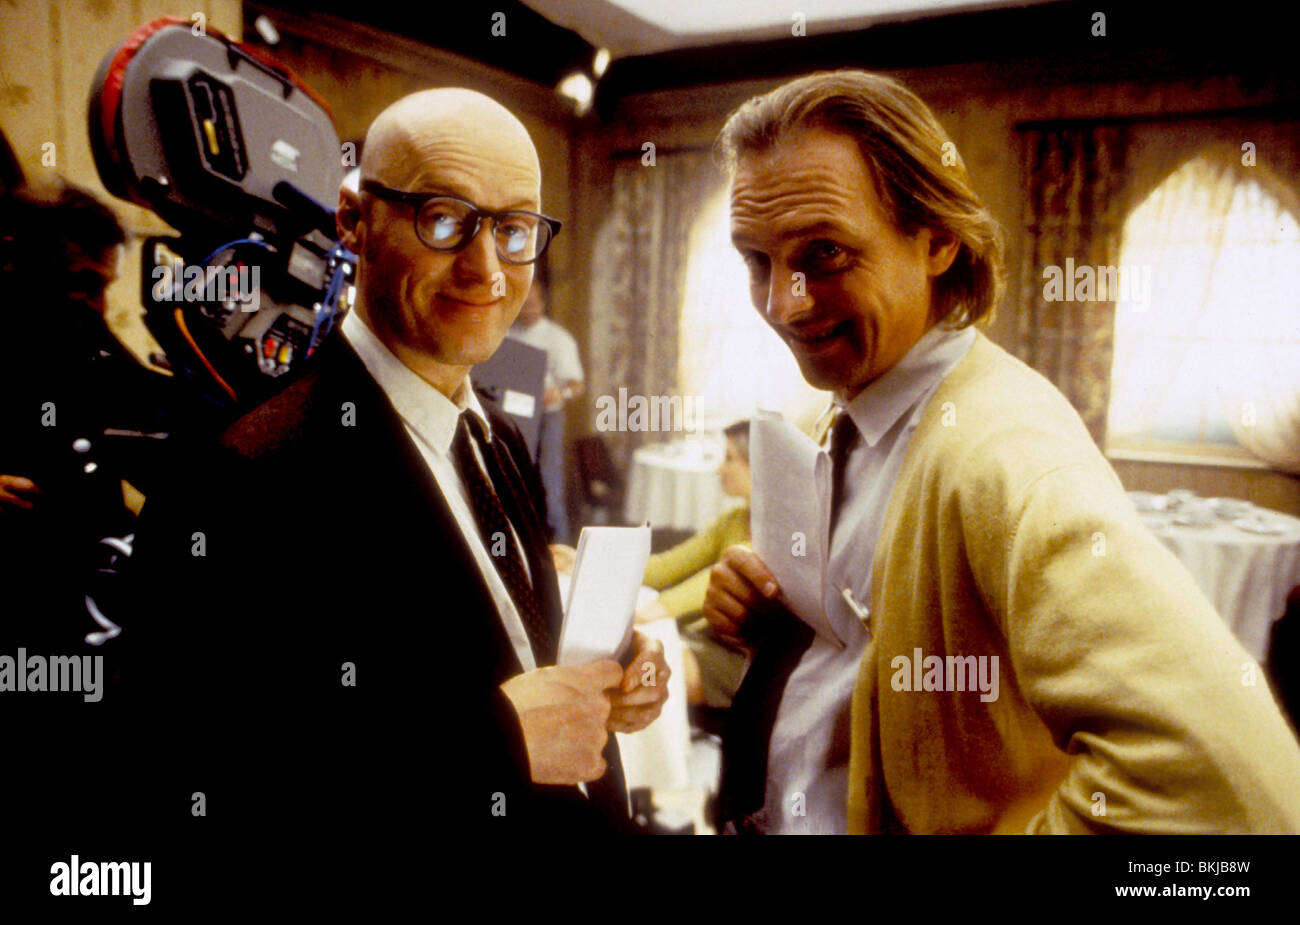 ADRIAN EDMONDSON (DIR) O/S 'GUEST HOUSE PARADISO (1999)' WITH RIK MAYALL ADED 001 - Stock Image